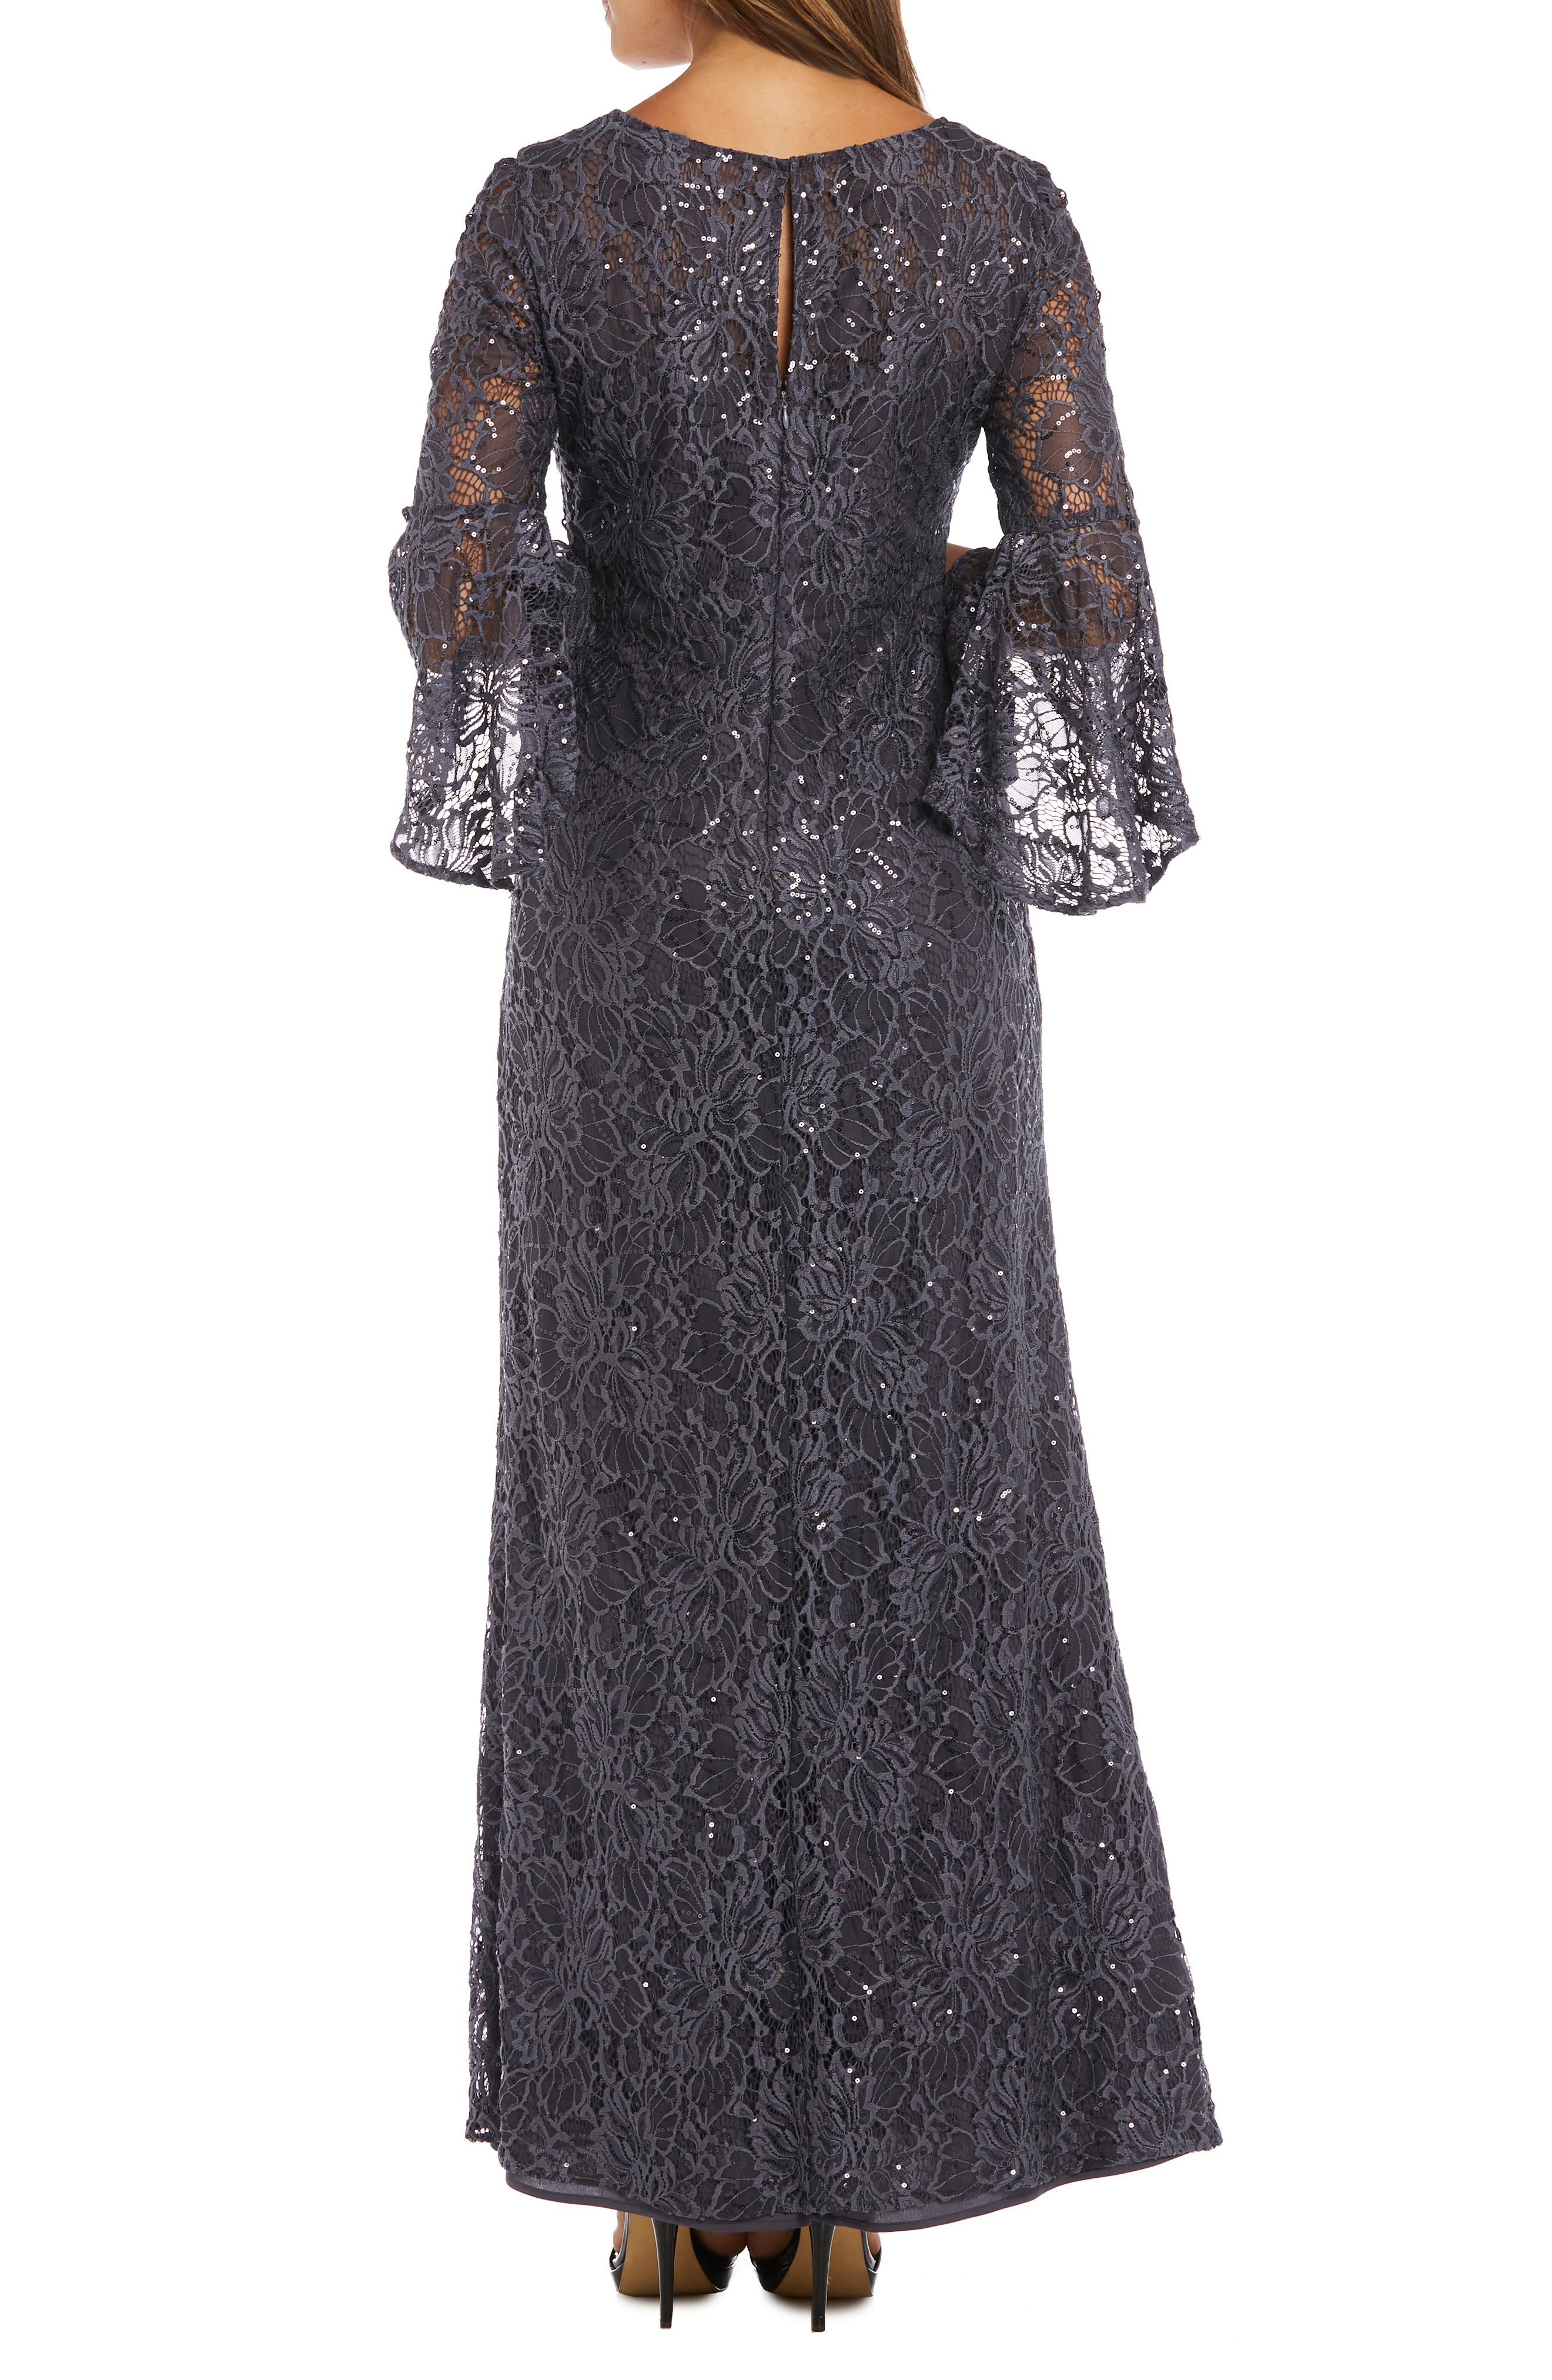 MORGAN & CO.,                             Sequin Embellished Gown,                             Alternate thumbnail 2, color,                             CHARCOAL